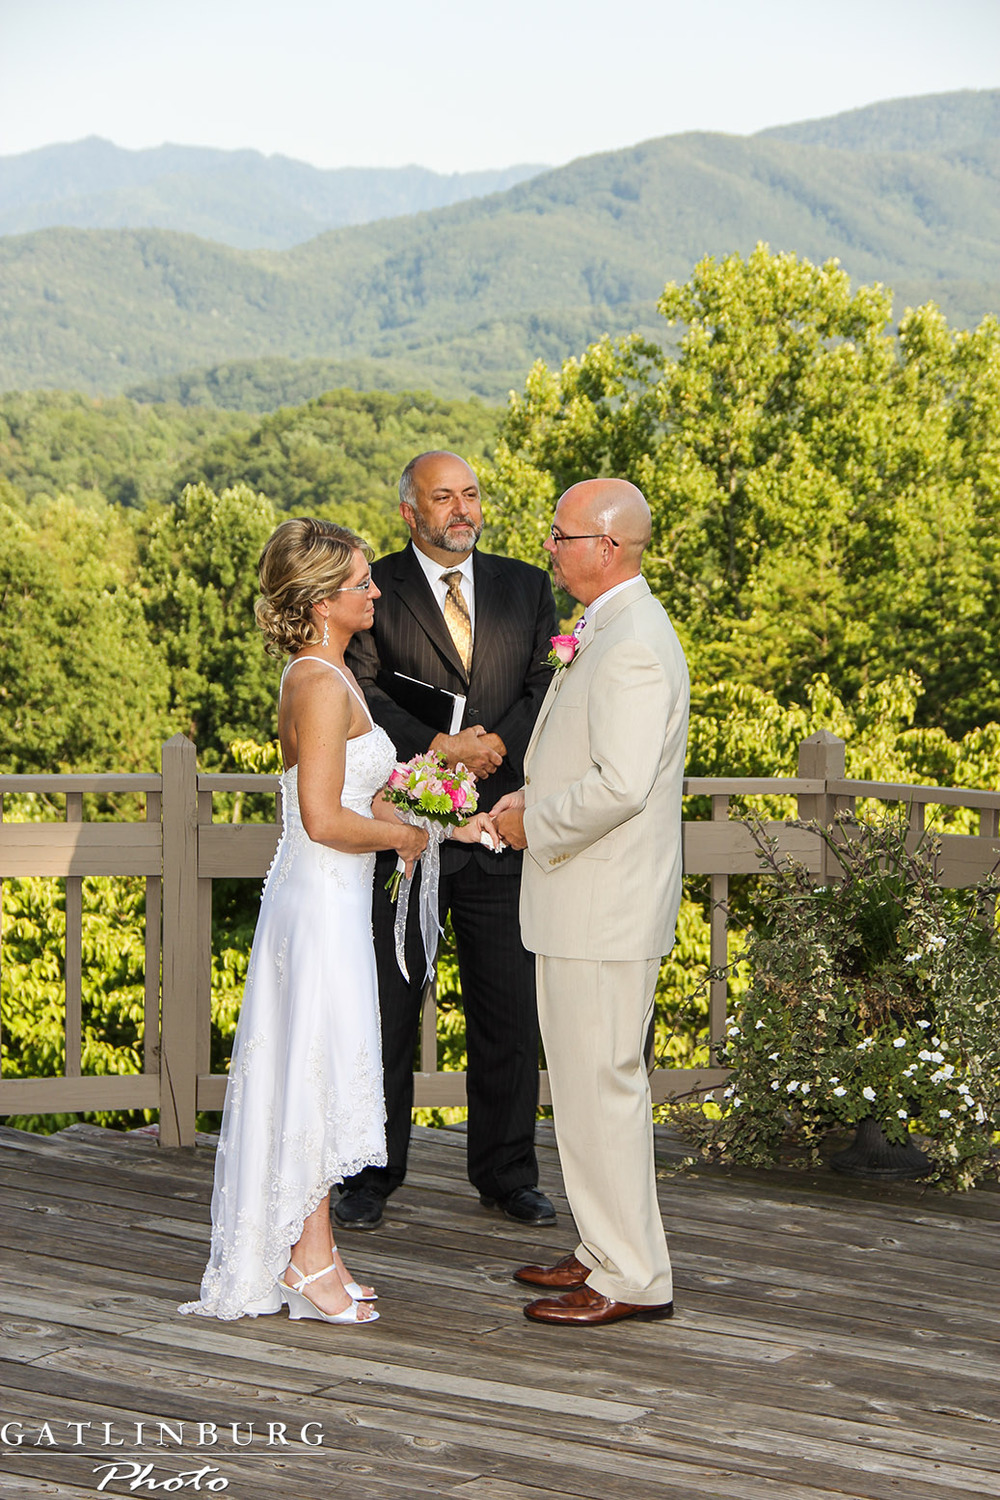 kevin-barbara-gatlinburg-wedding-ceremony.jpg